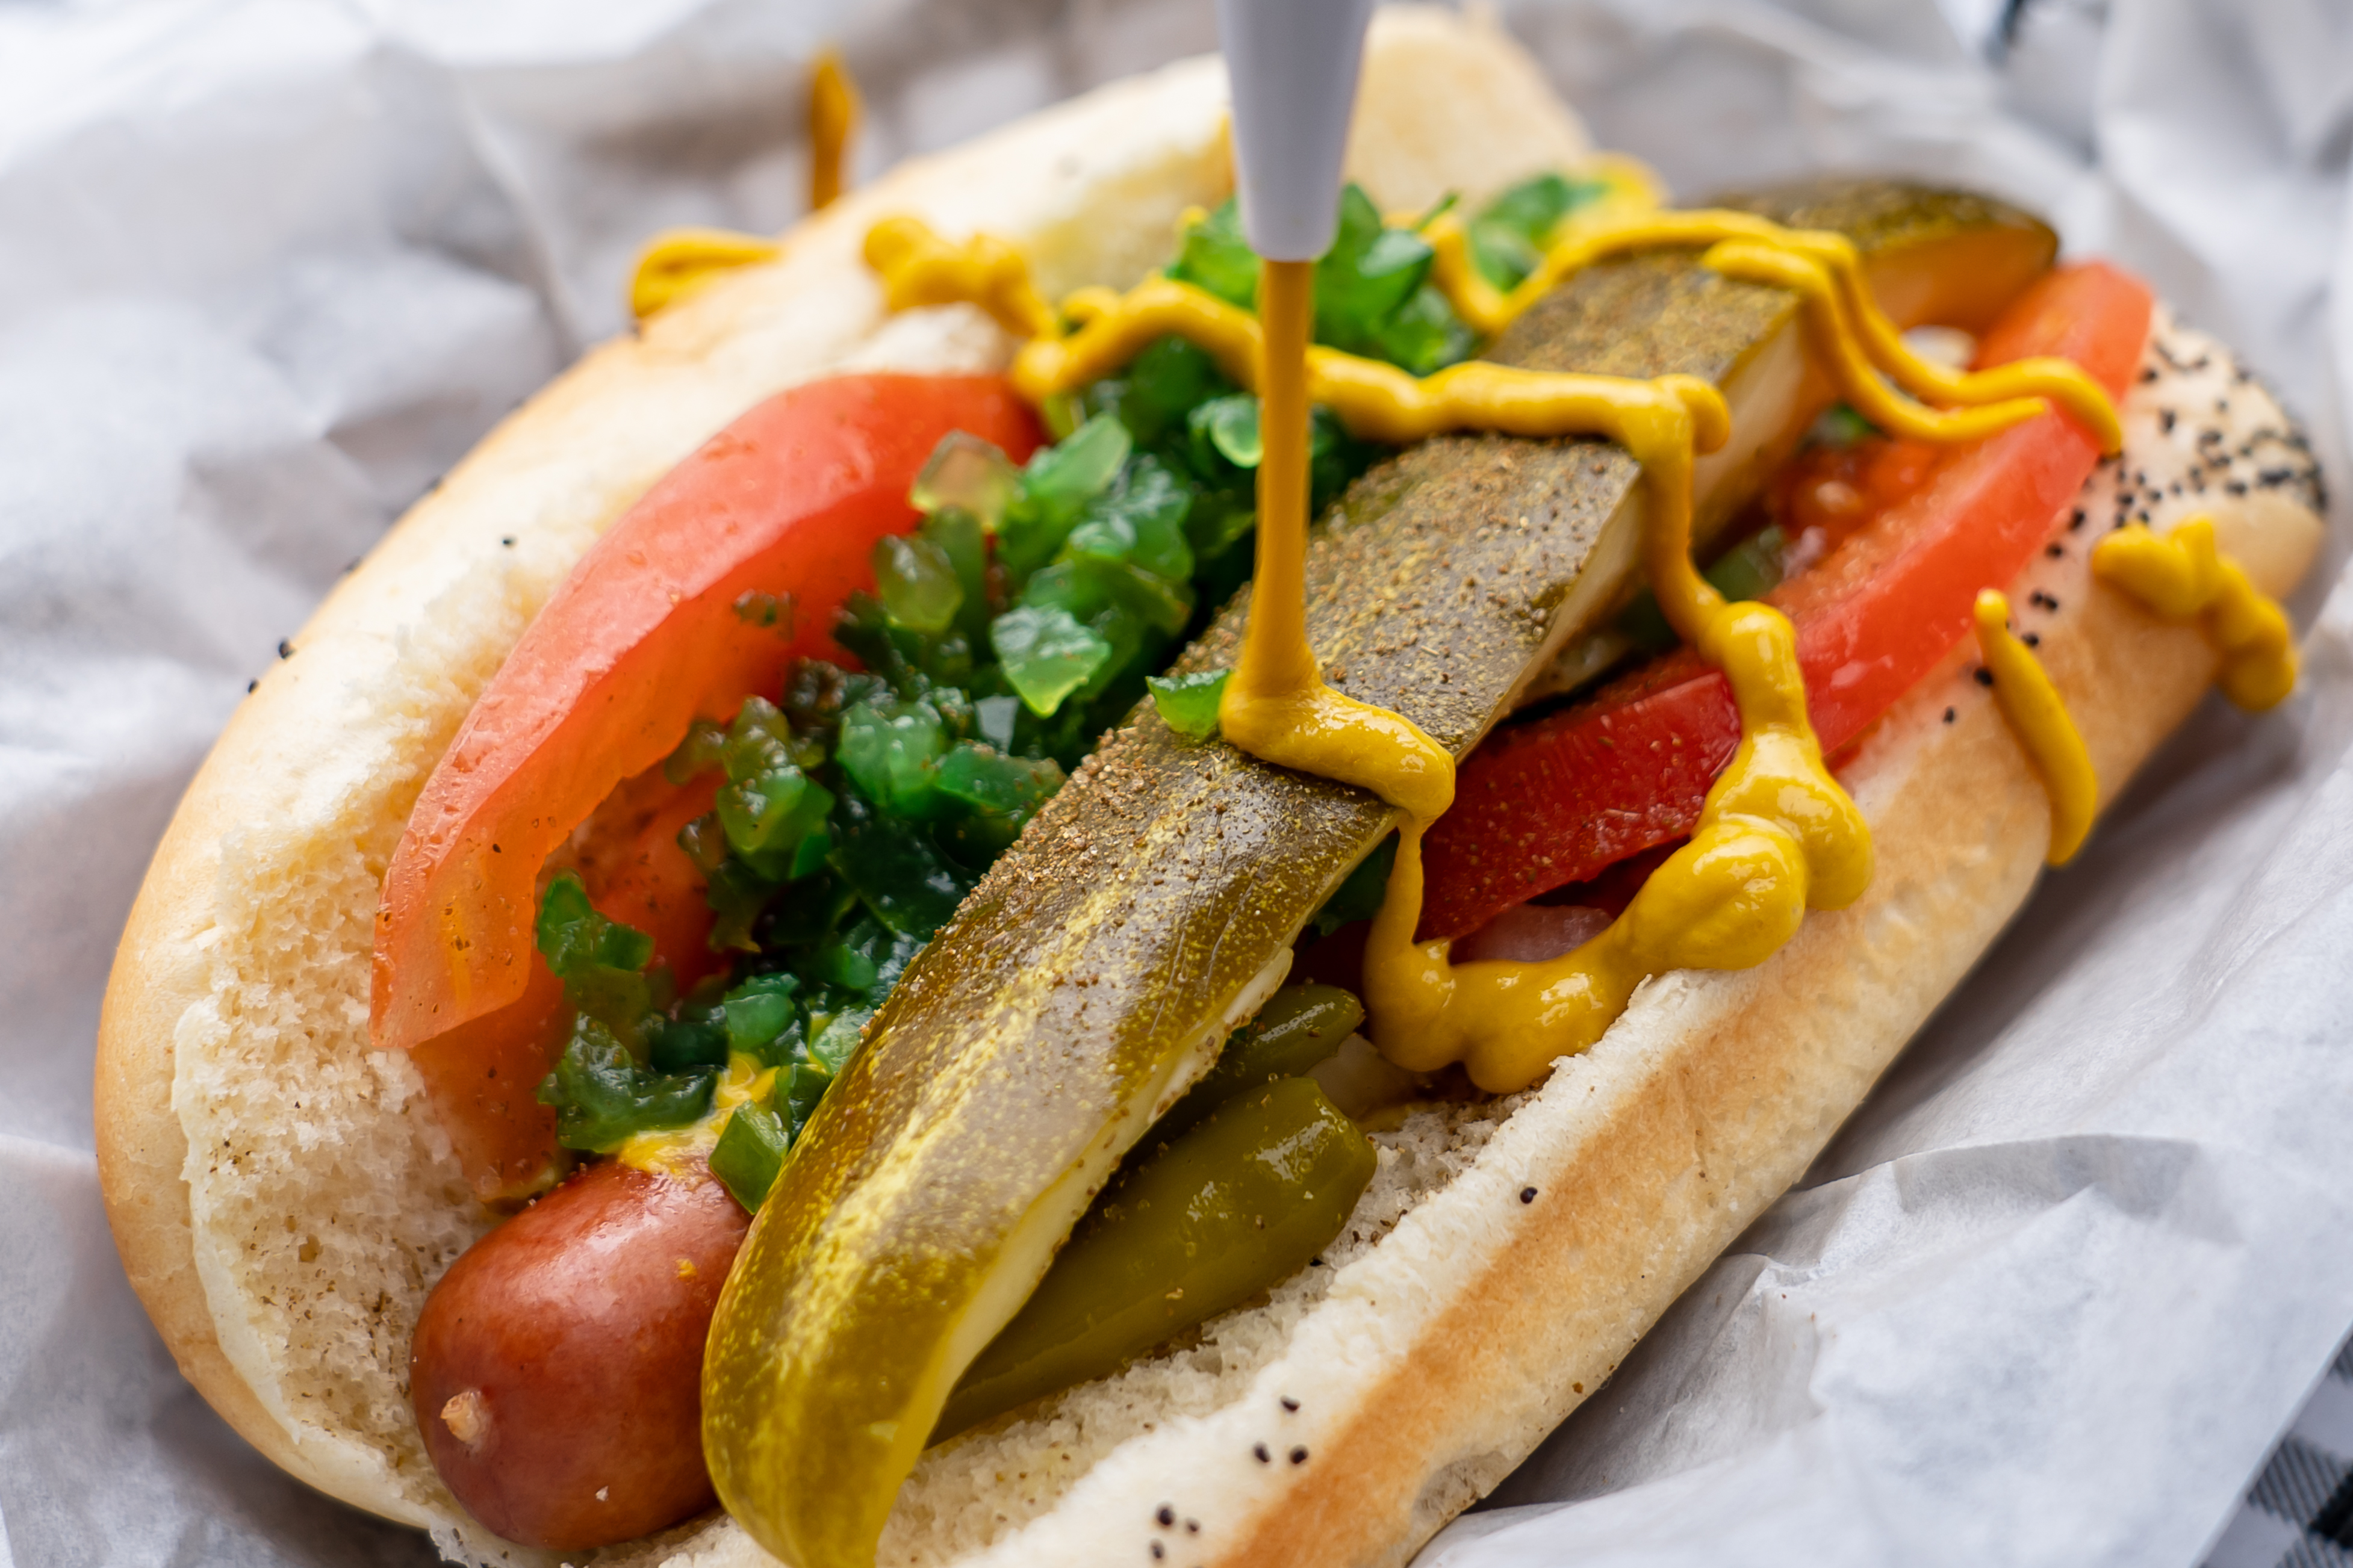 Hot dog with relish, tomato, pickle and mustard